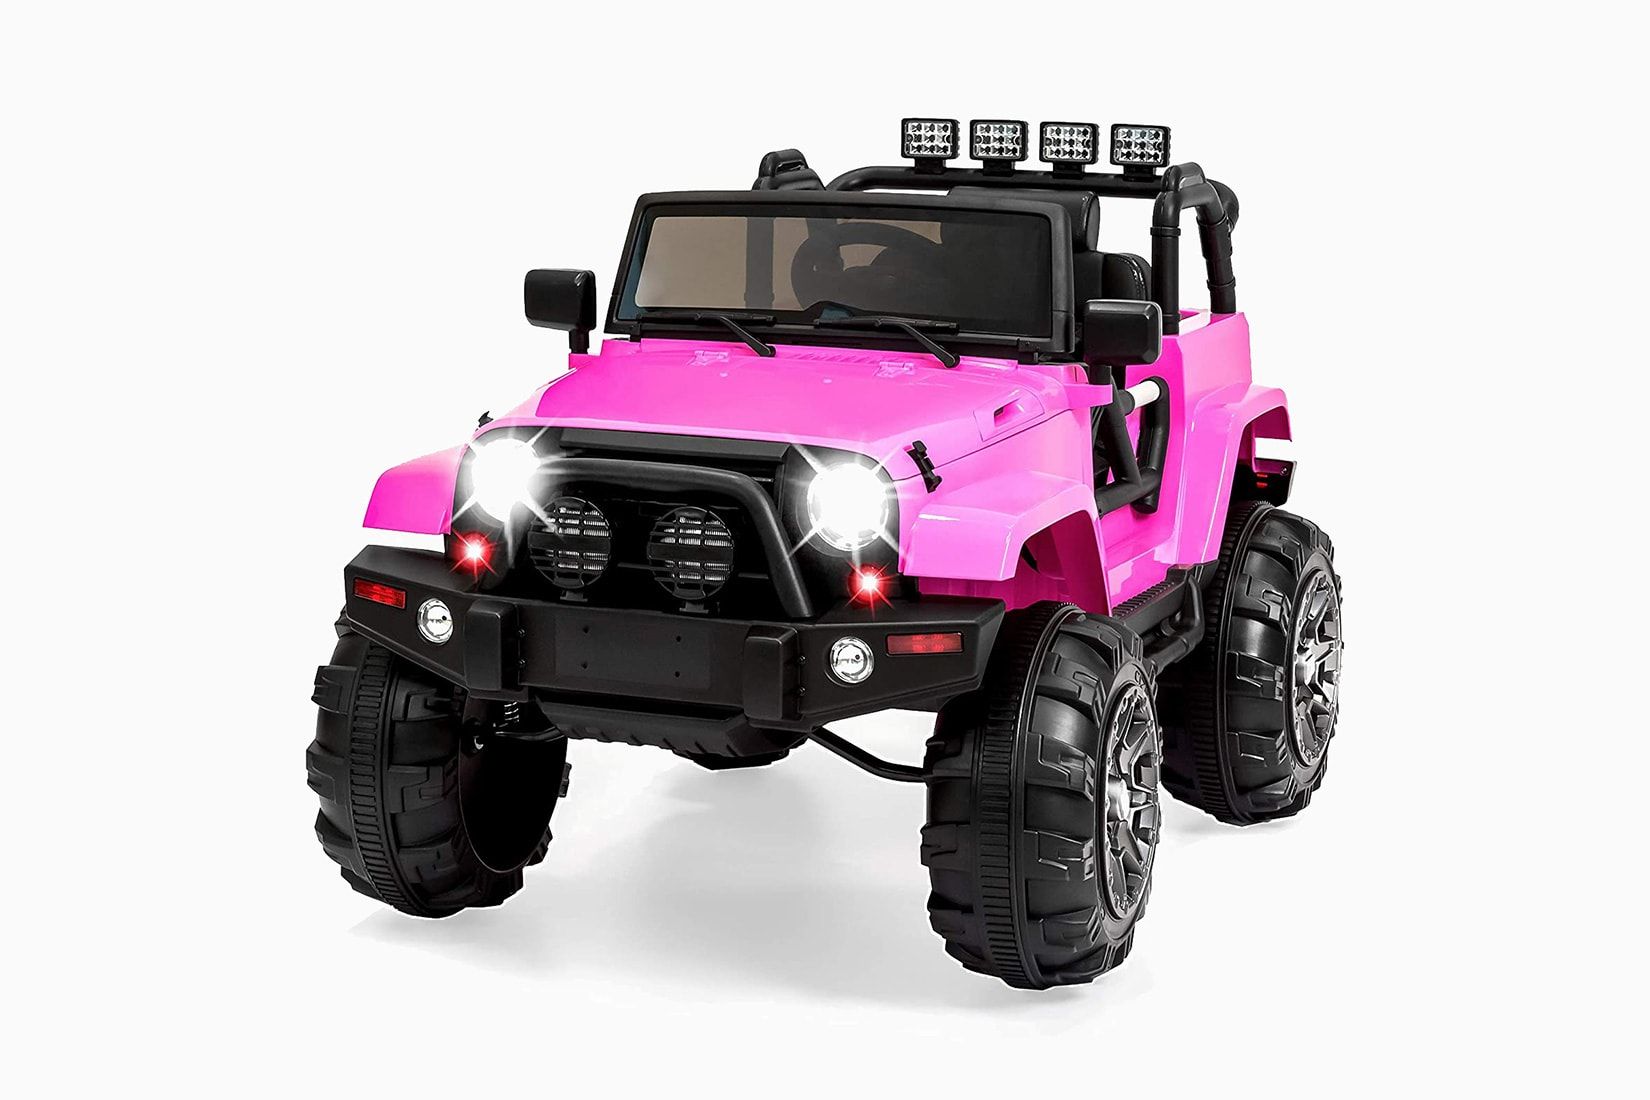 best electric cars kids choice pink ride-on - Luxe Digital